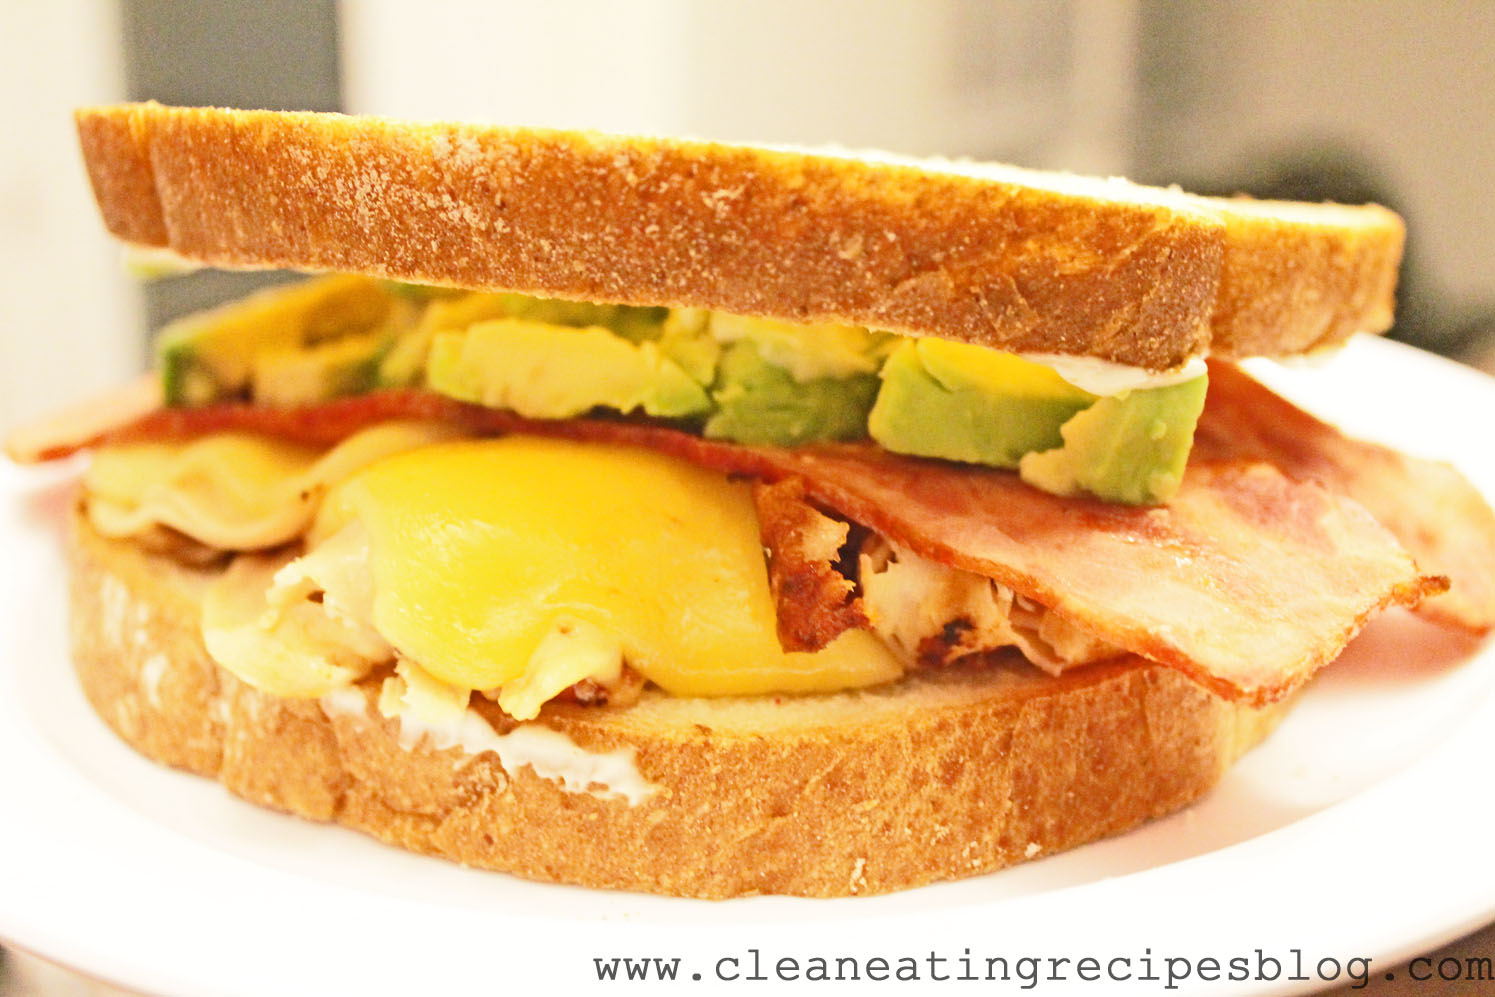 Clean Eating Recipe – Turkey, Avocado and Gouda Sandwich